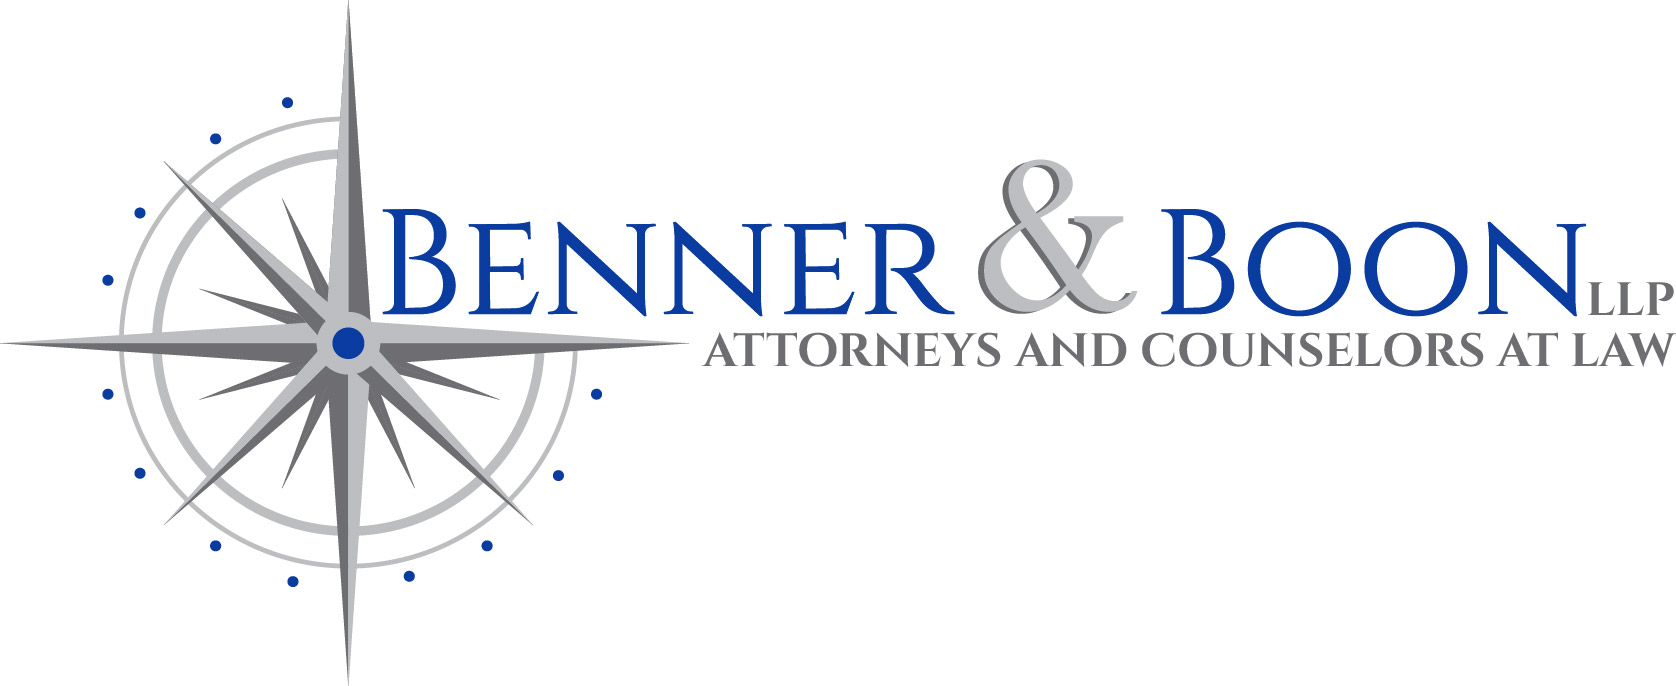 Benner & Boon, LLP | Lawyers in 542 15th St - San Diego CA - Reviews - Photos - Phone Number